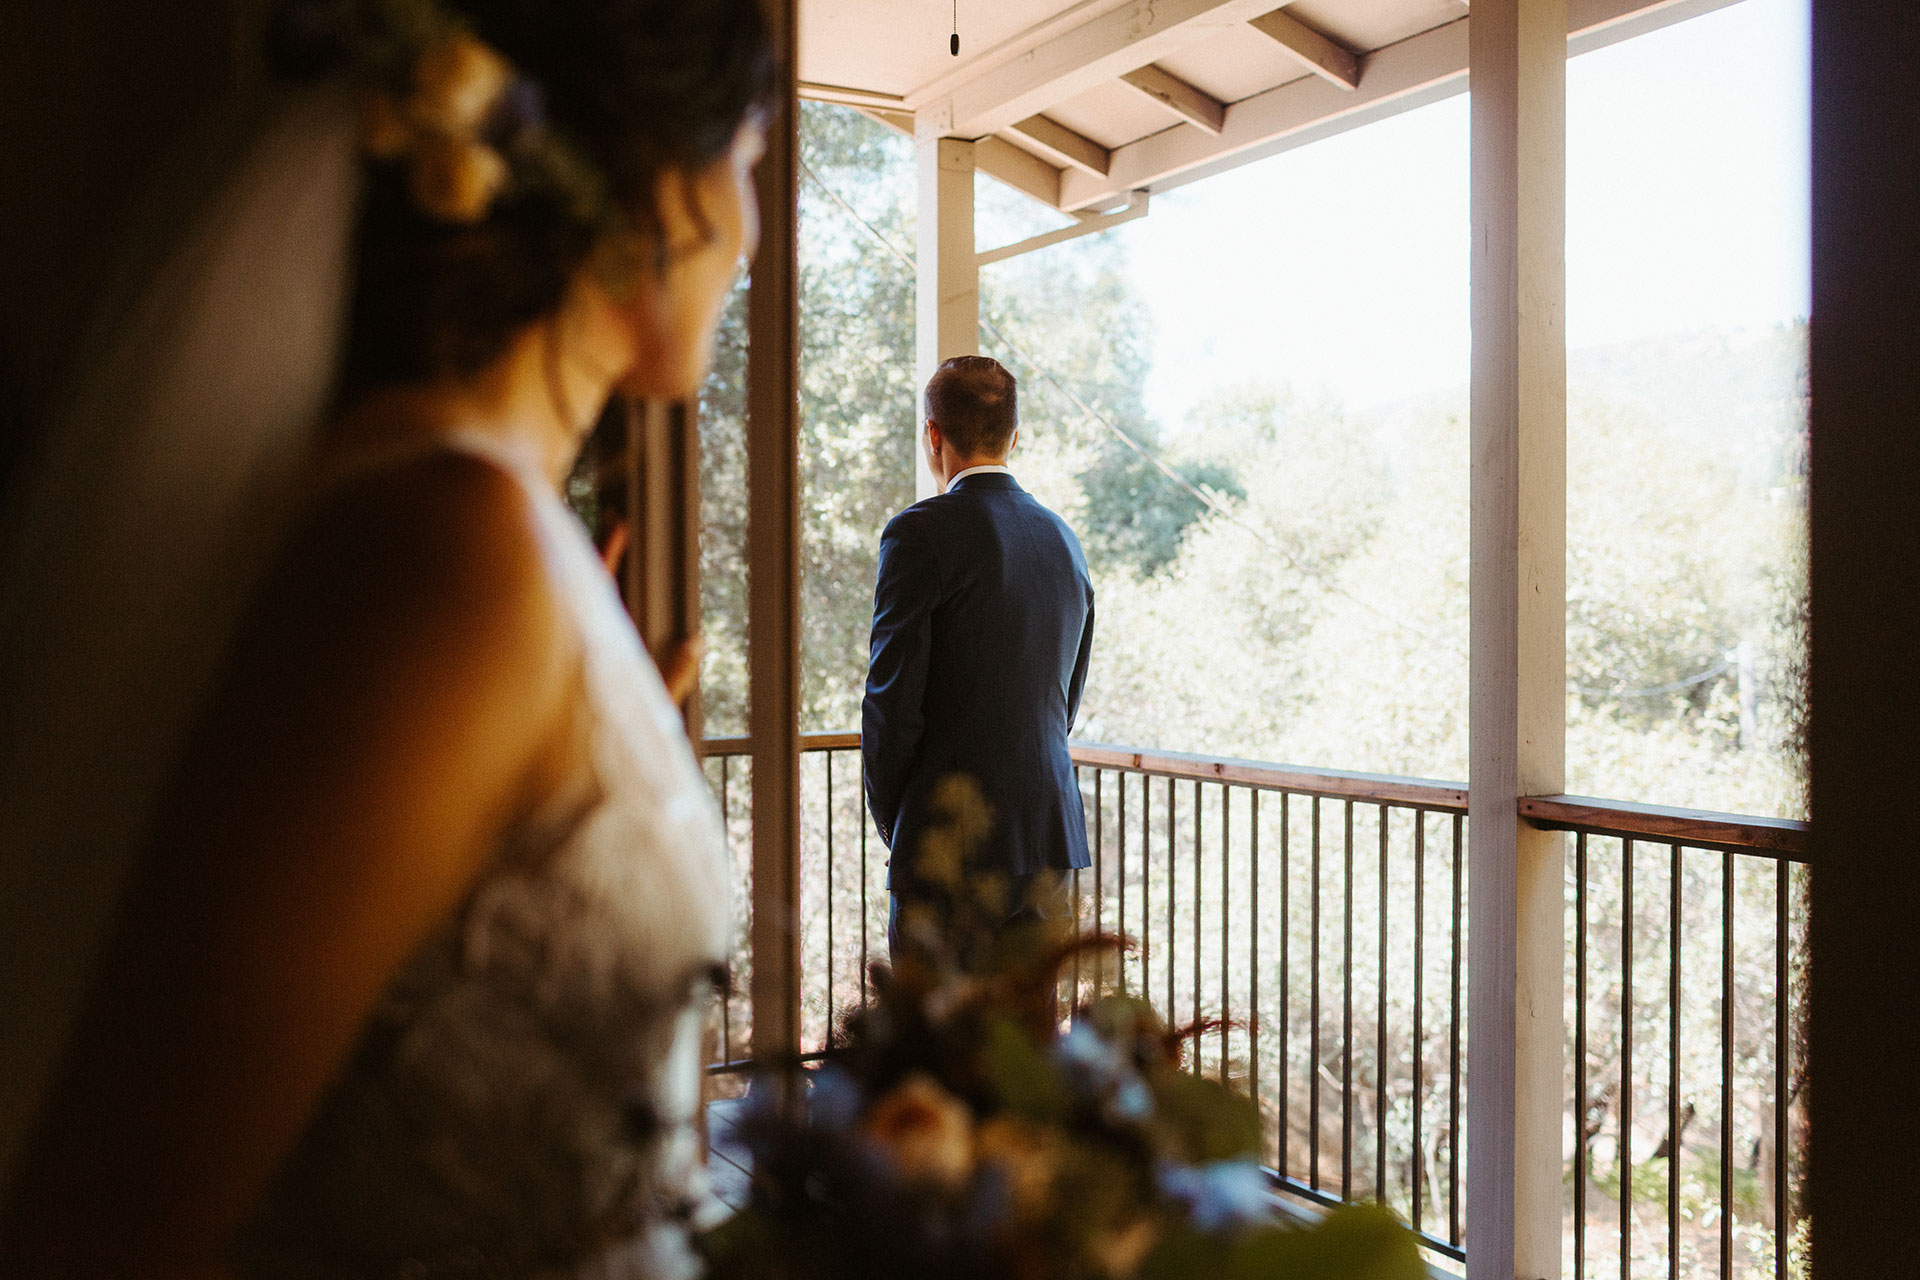 Yosemite Elopement Photographer   First look time for the bride and groom